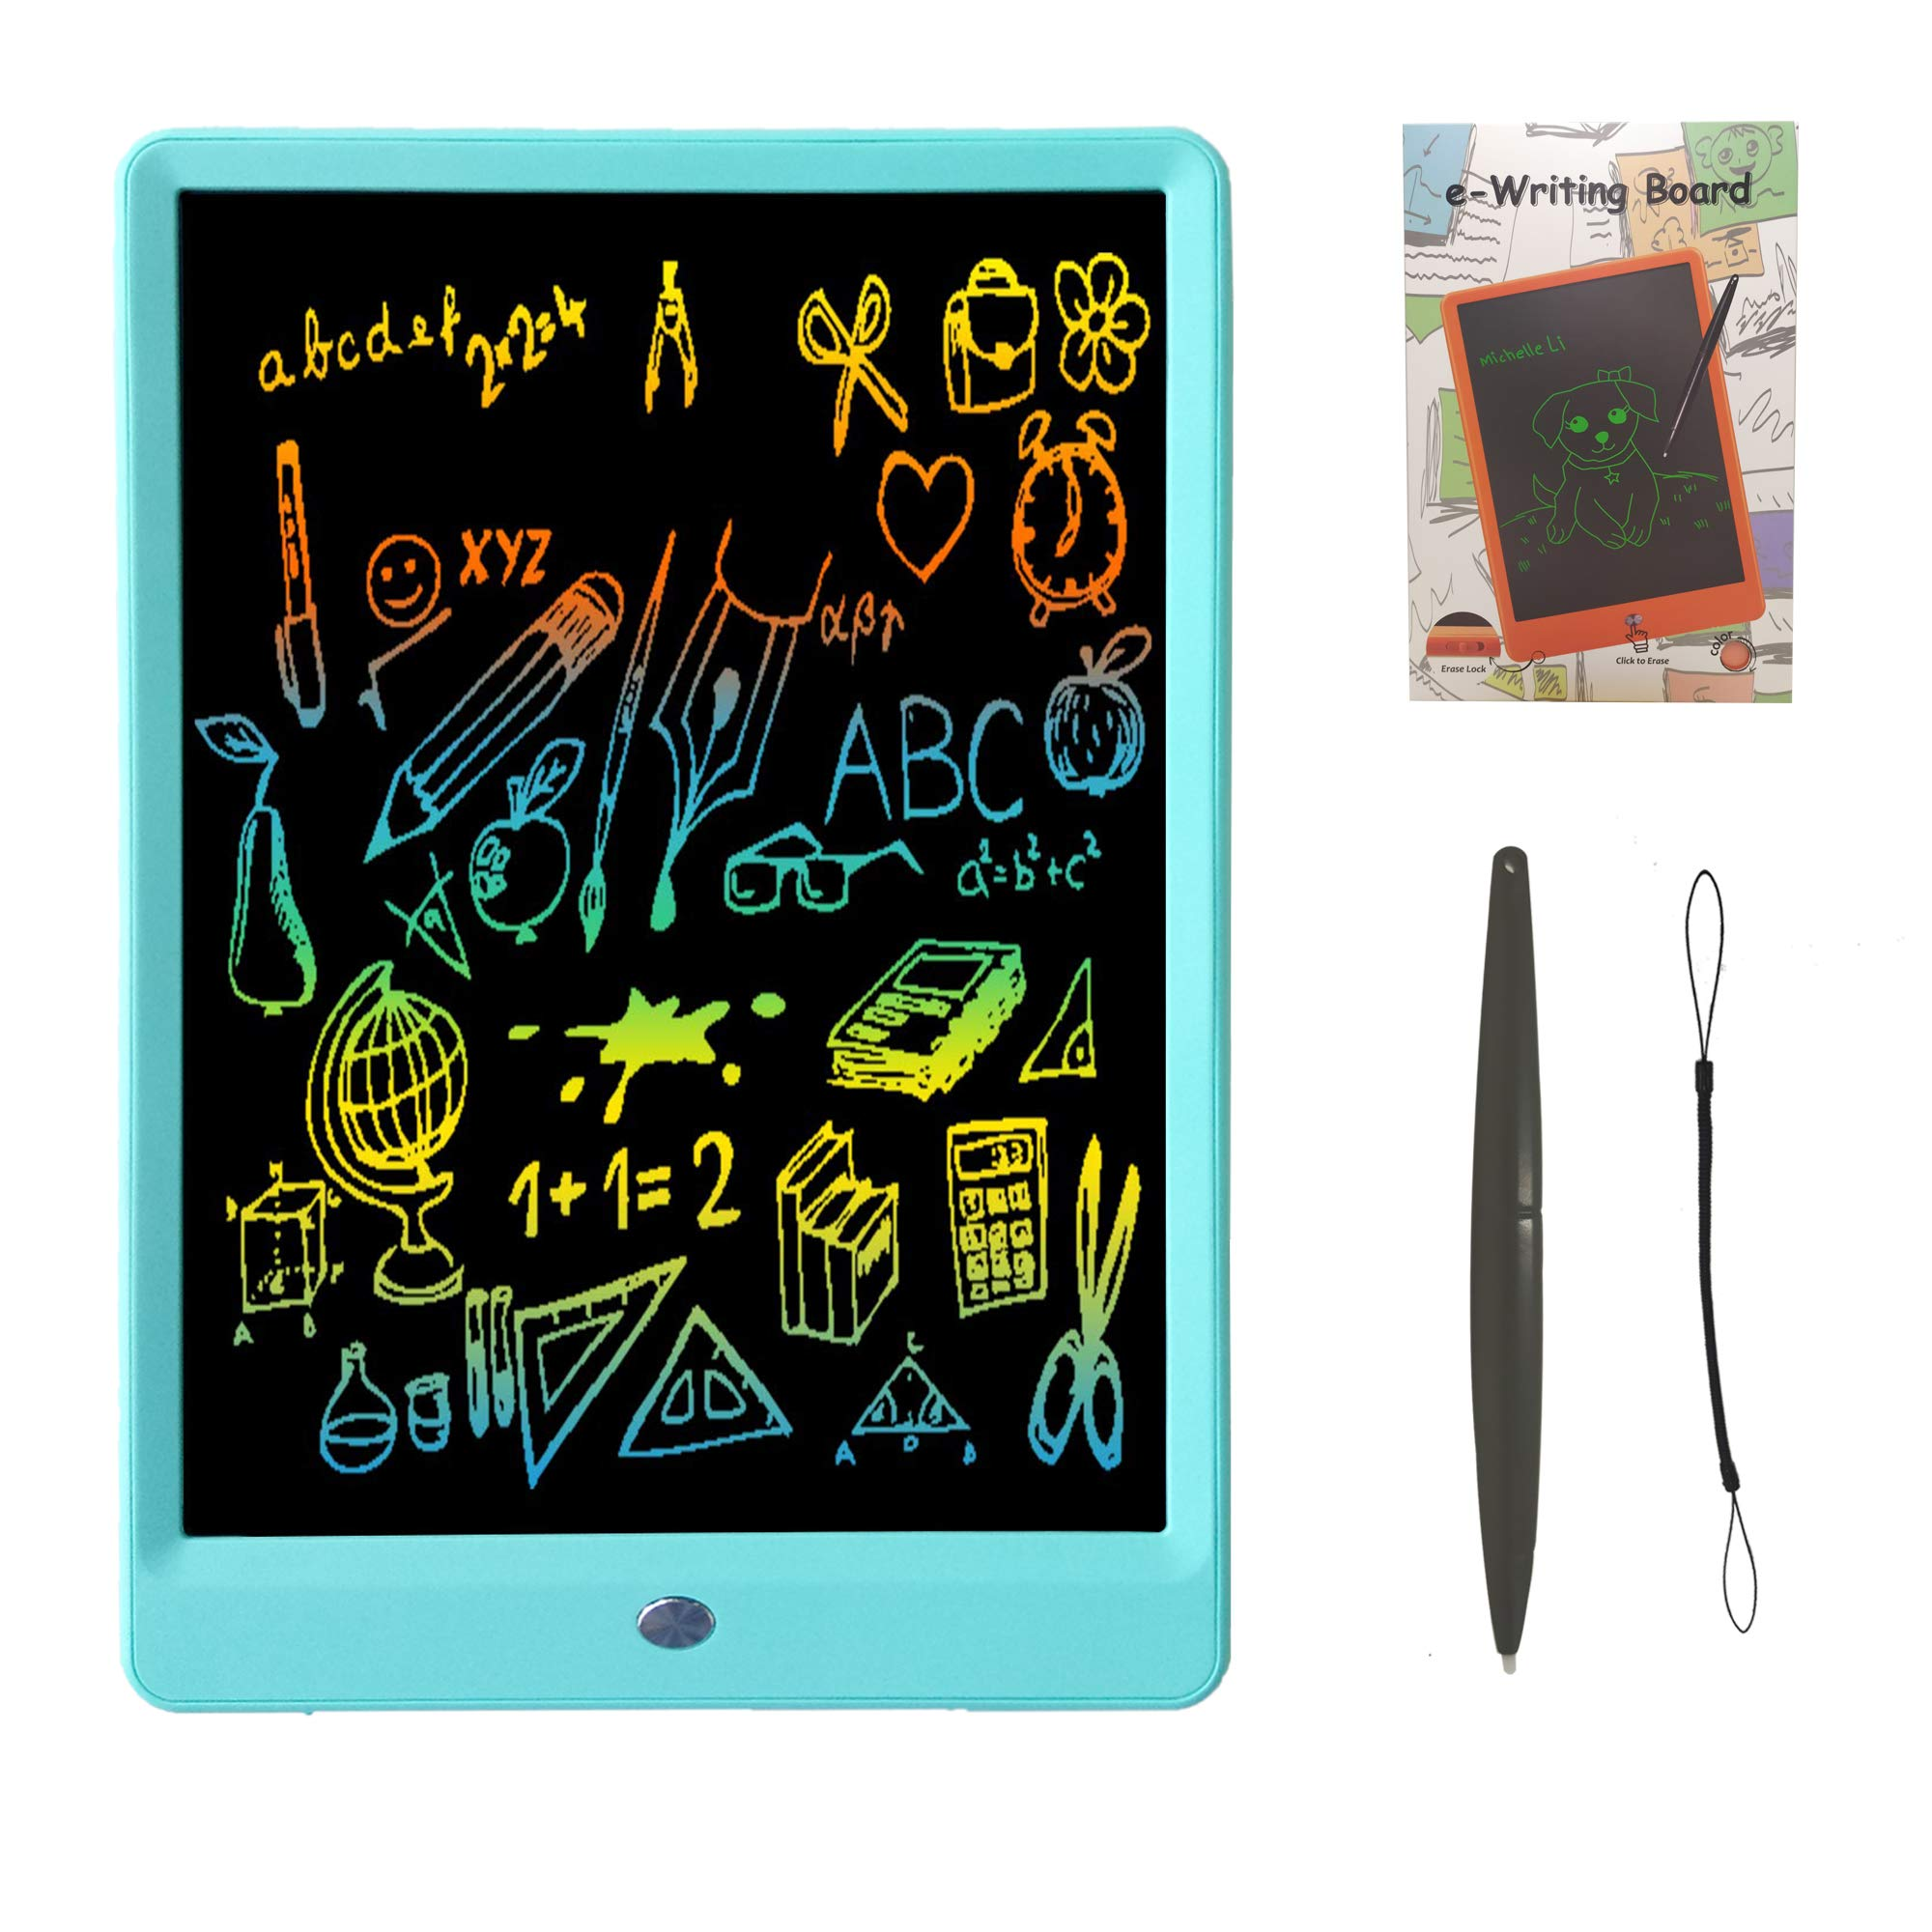 Drawing Tablet 10 Inches LCD Writing Tablet Colorful Screen, Doodle Board Electronic Doodle Pads Writing Board for Kids and Adults(Blue) by ZBHT